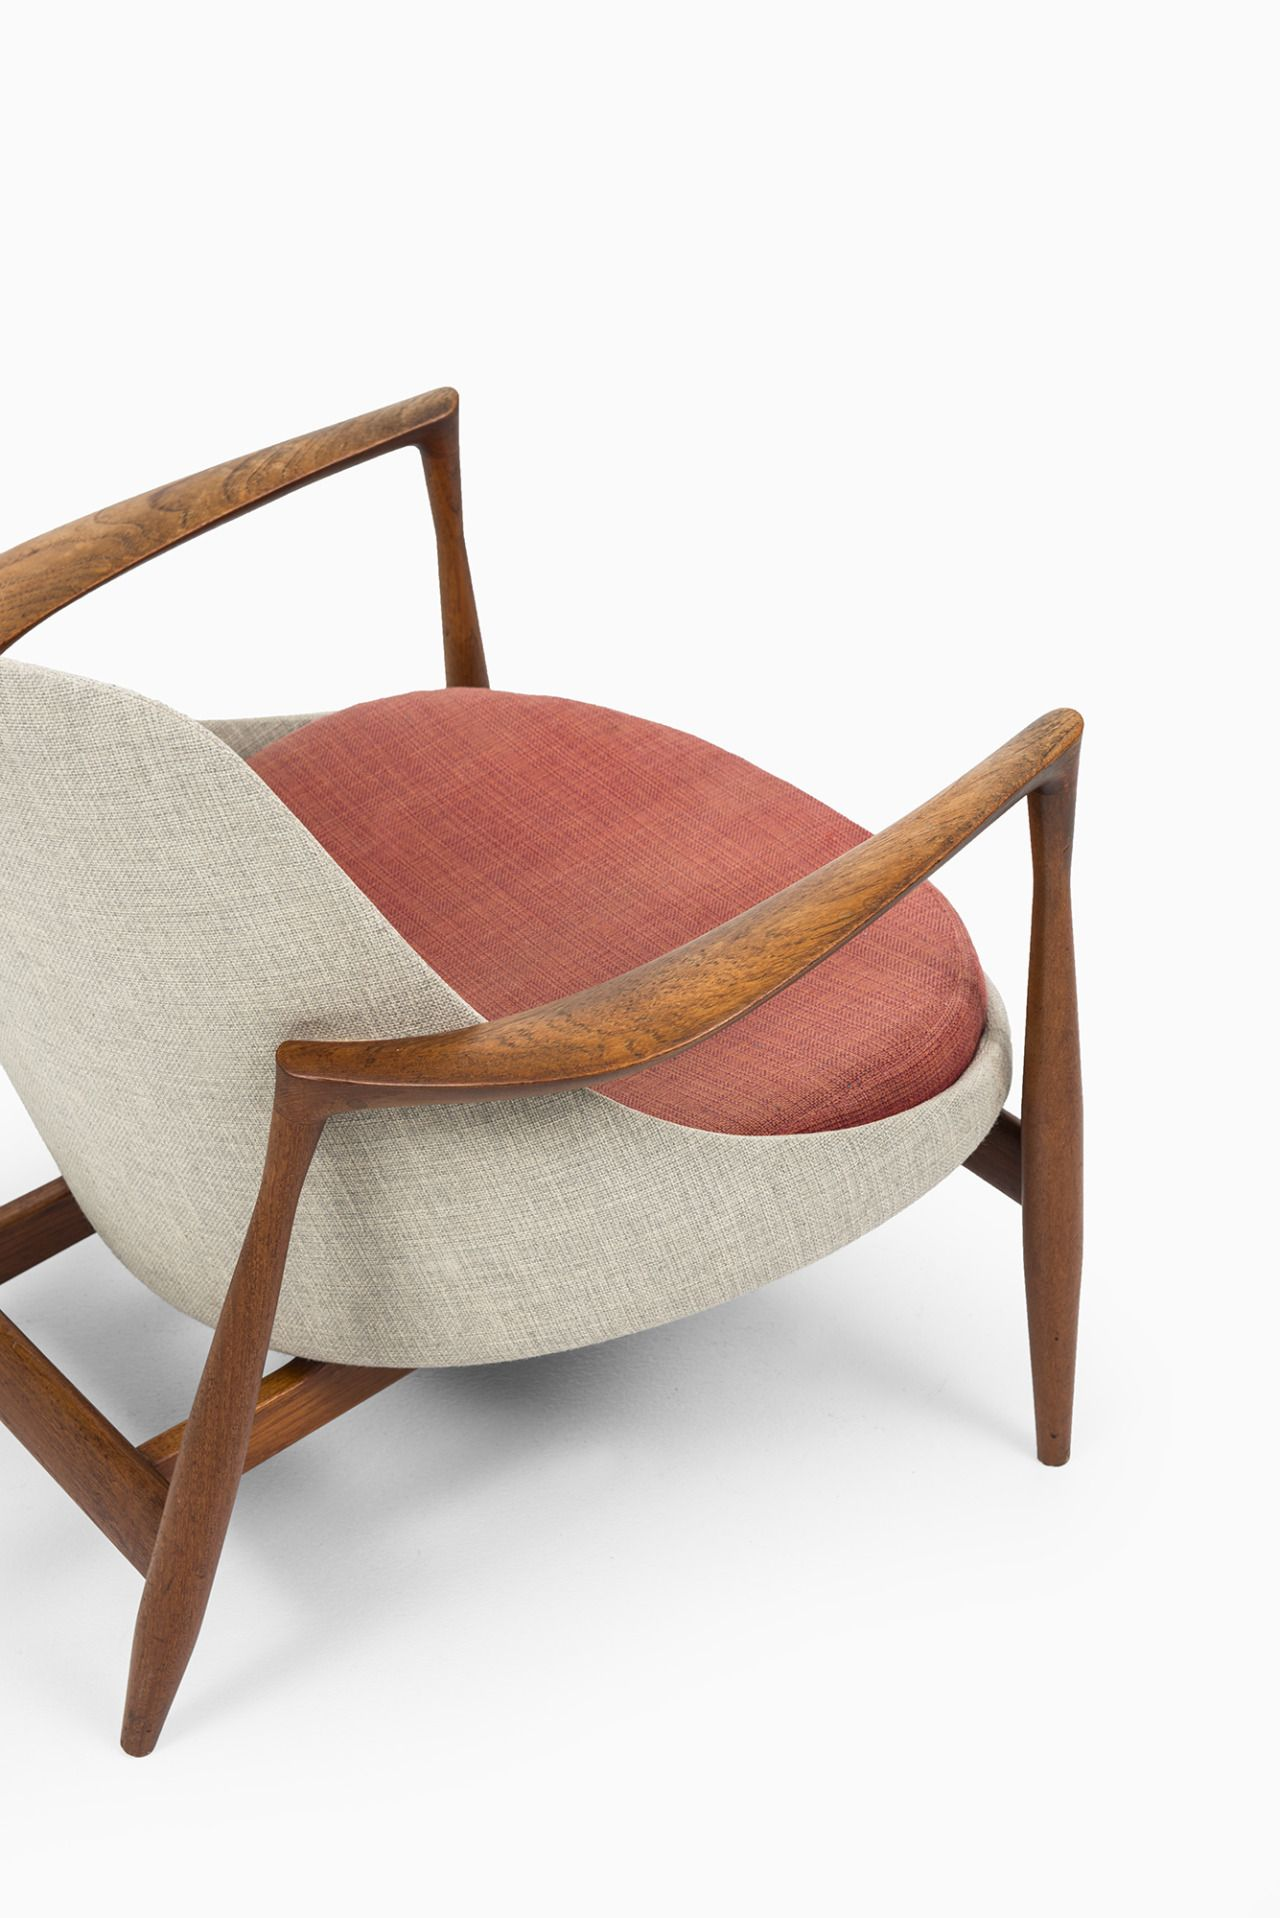 Schalling:Rare Easy Chair Model Elizabeth Designed By Ib Kofod Larsen.  Produced By